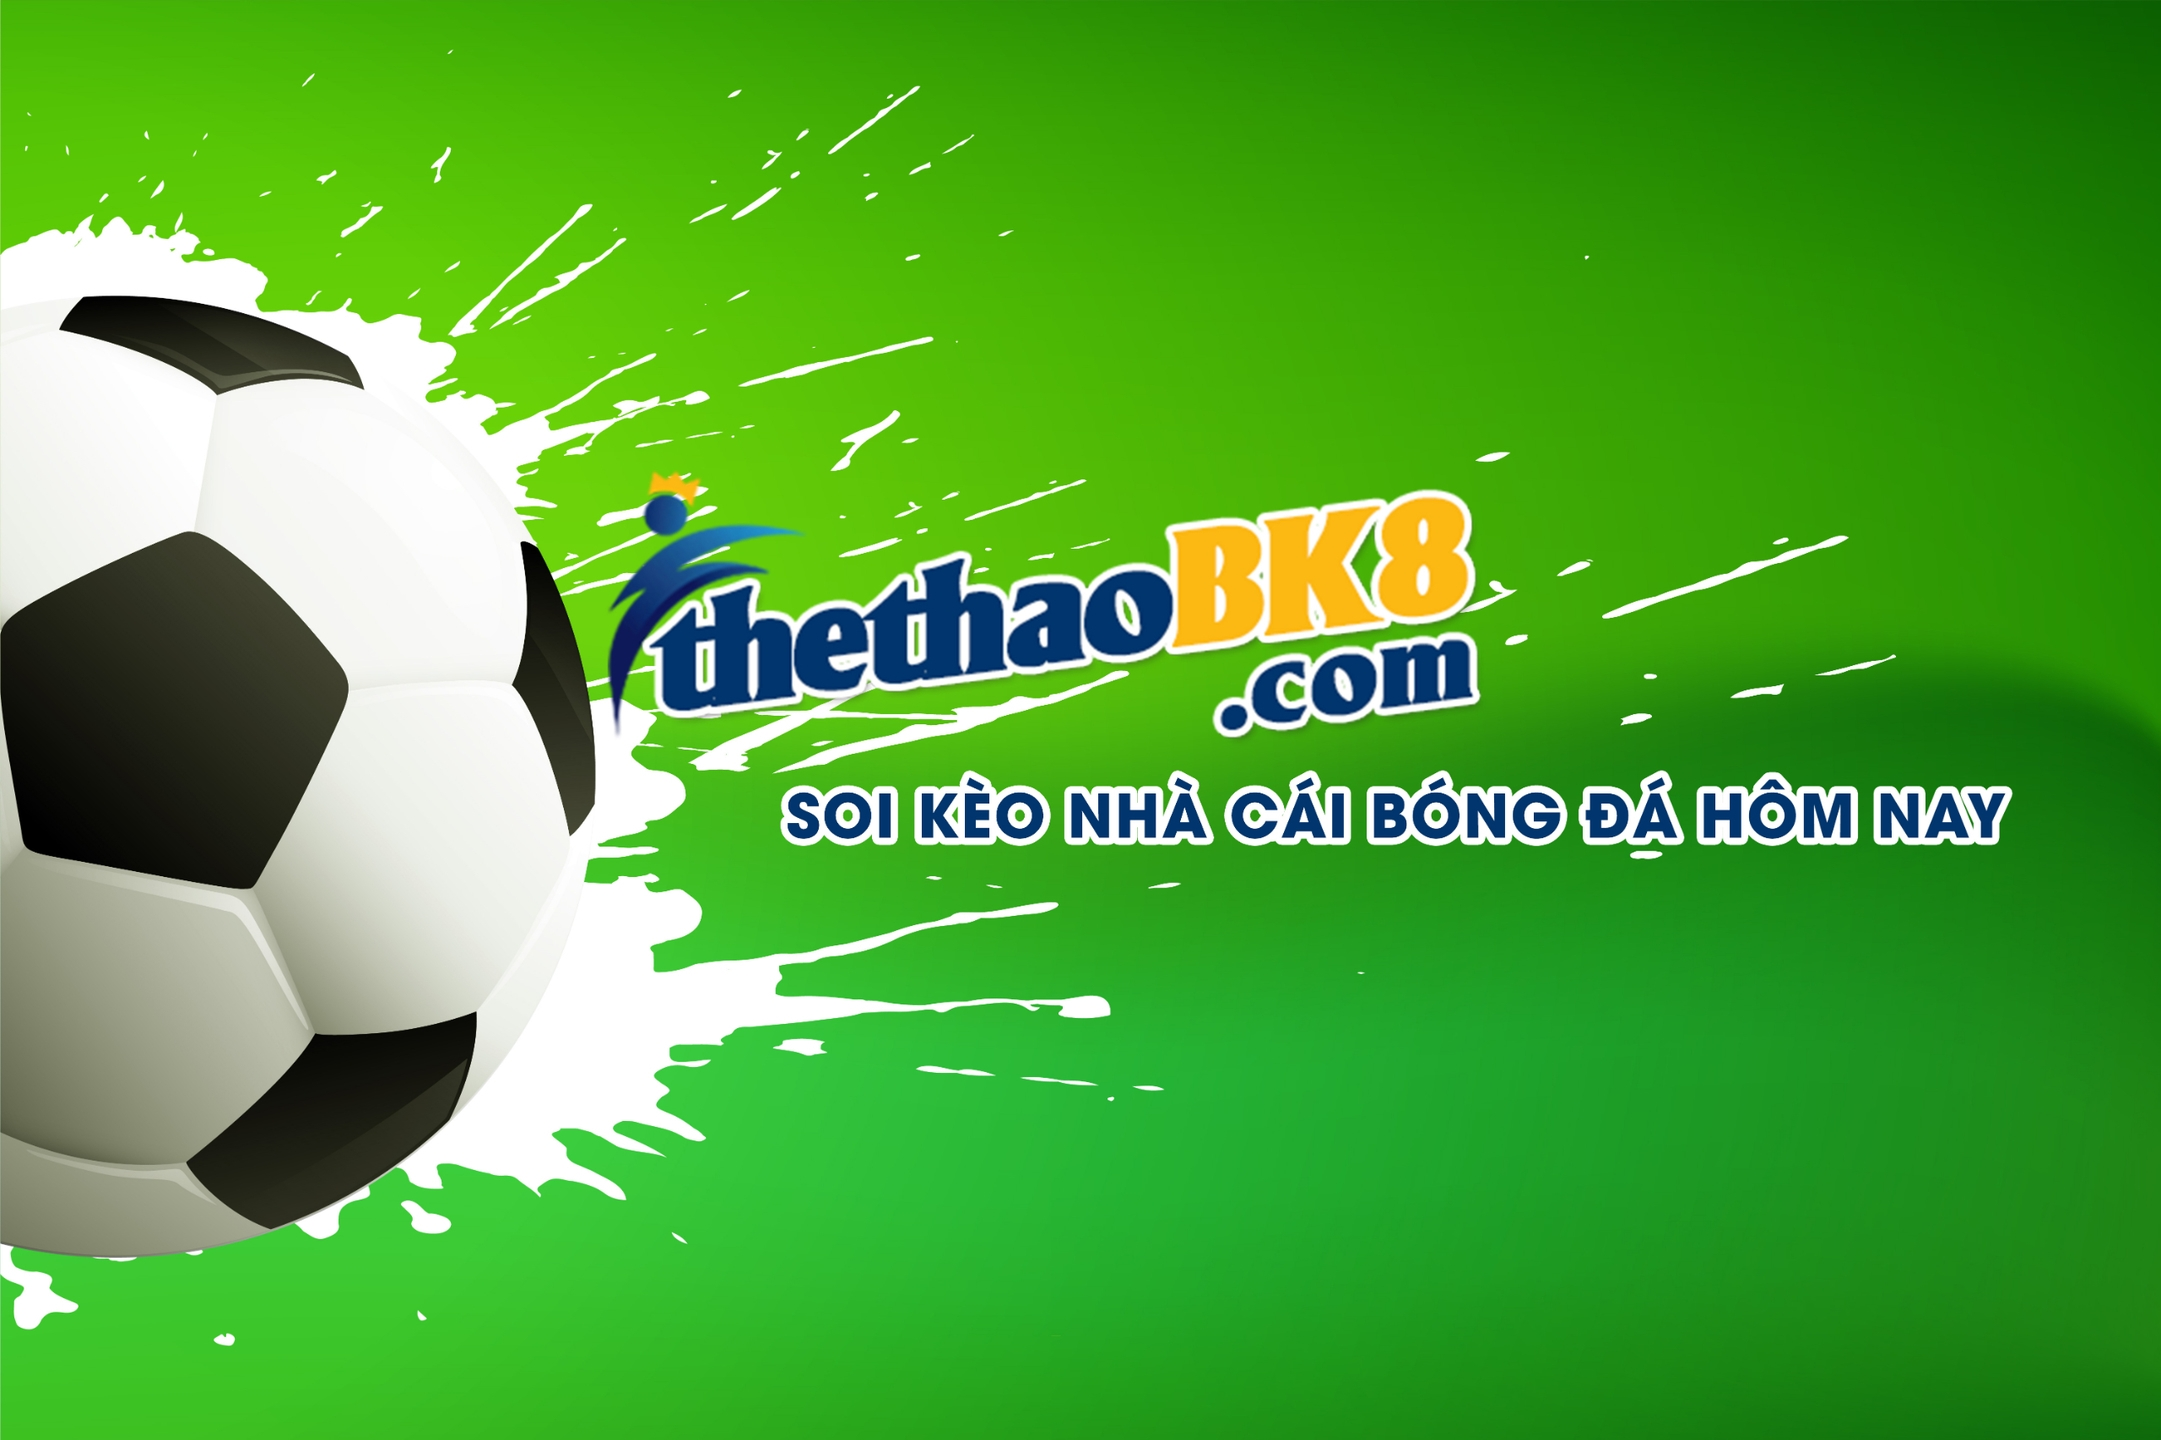 Thể Thao BK8 (@thethaobk8) Cover Image